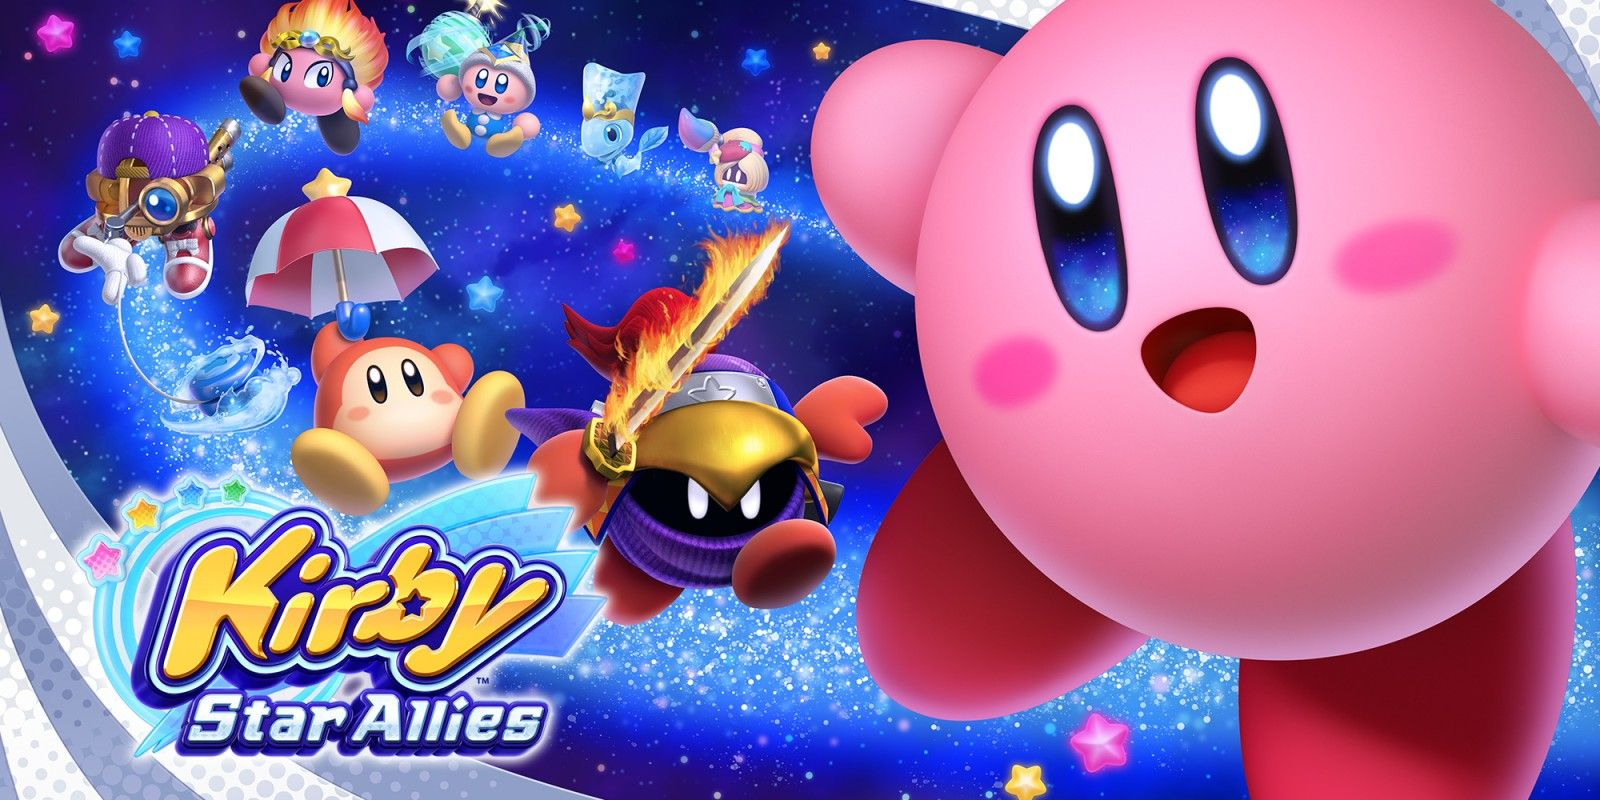 Kirby Star Allies has seen a visual boost from the last trailer. http://bit.ly/2lnzap3 #nintendo